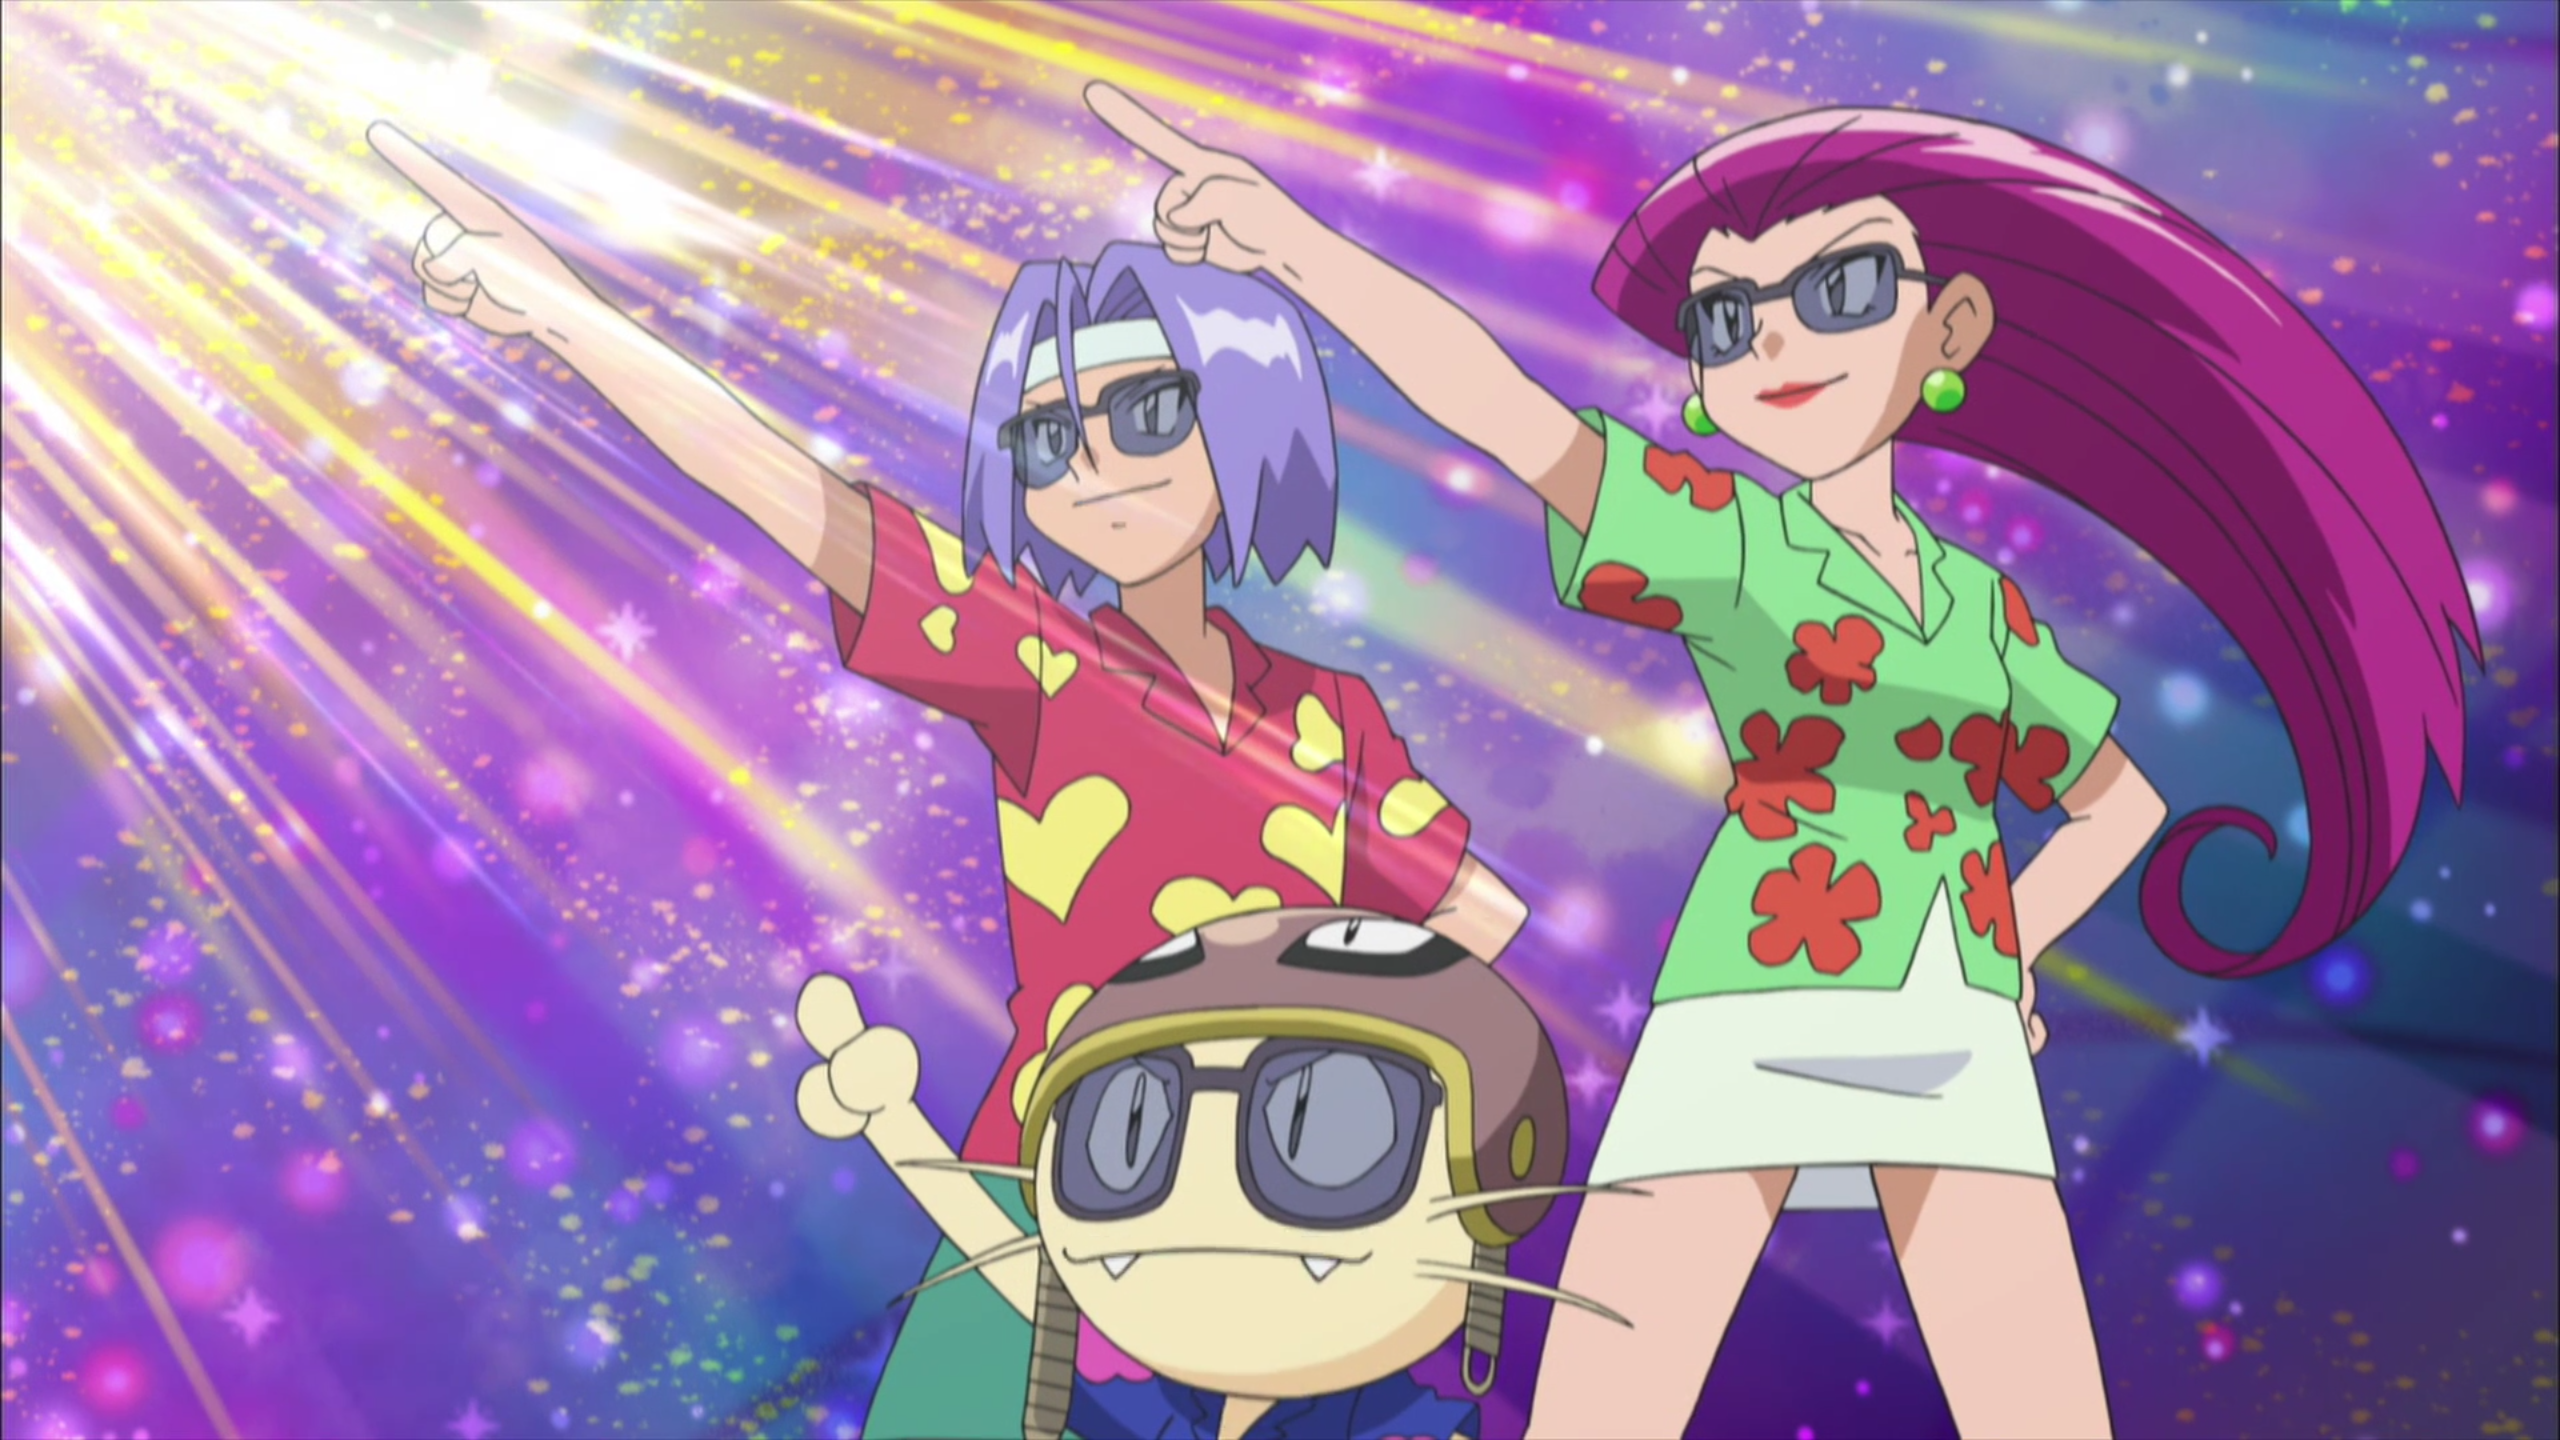 Team Rocket wearing Hawaiian shirts and sunglasses strike a determined, heroic pose and point dramatically towards a sunburst